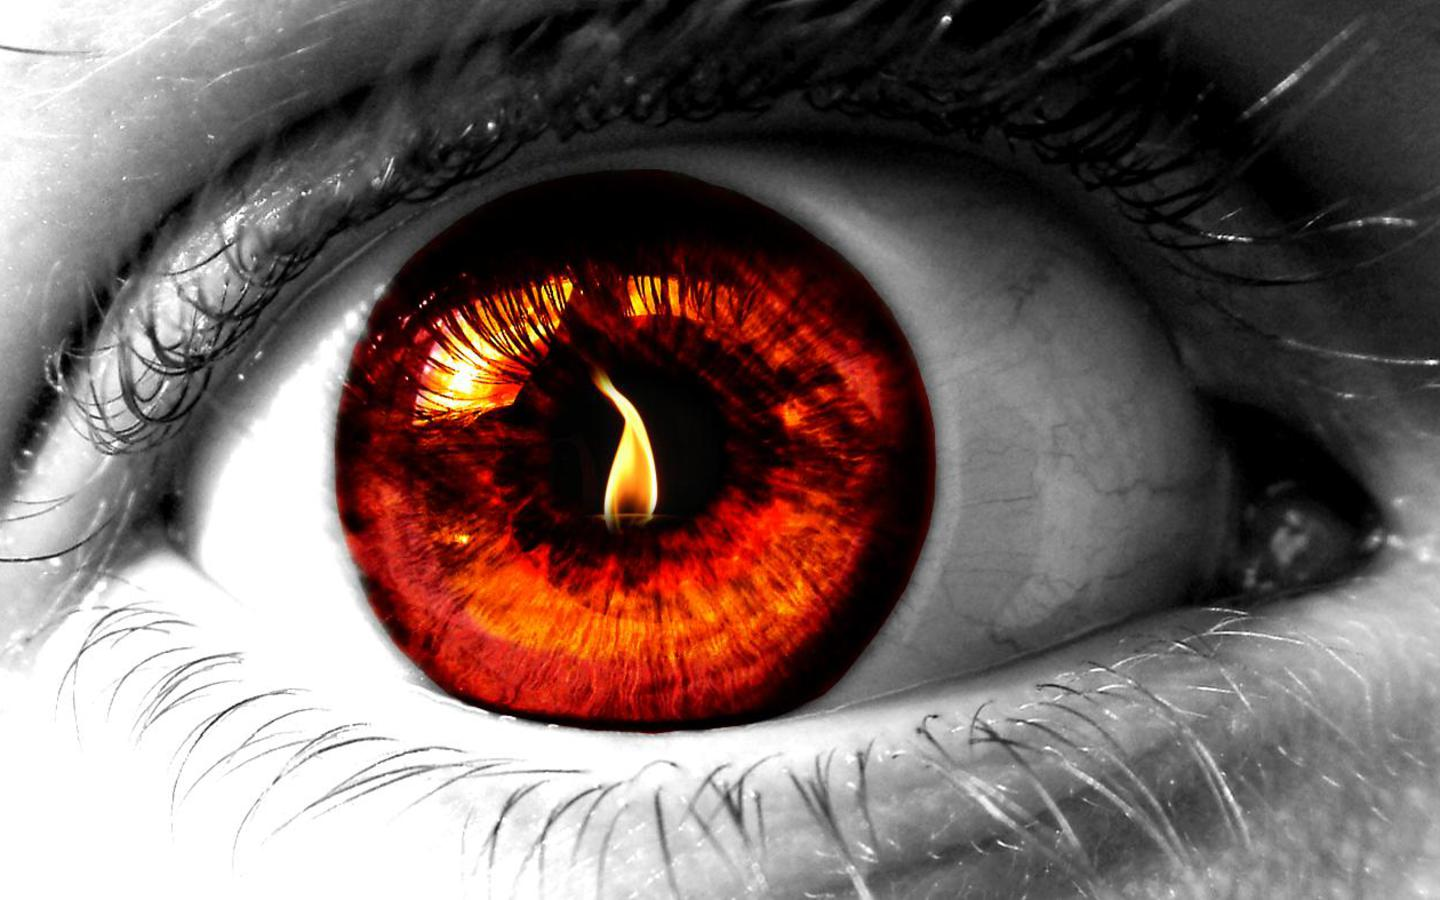 evil is in the eyes of the When they ate the forbidden fruit, the eye (hebrew: ayin, meaning a singular eye) of their understanding was opened concerning good and evil they became as gods in the sense of now being able to make their own decisions concerning good and evil.